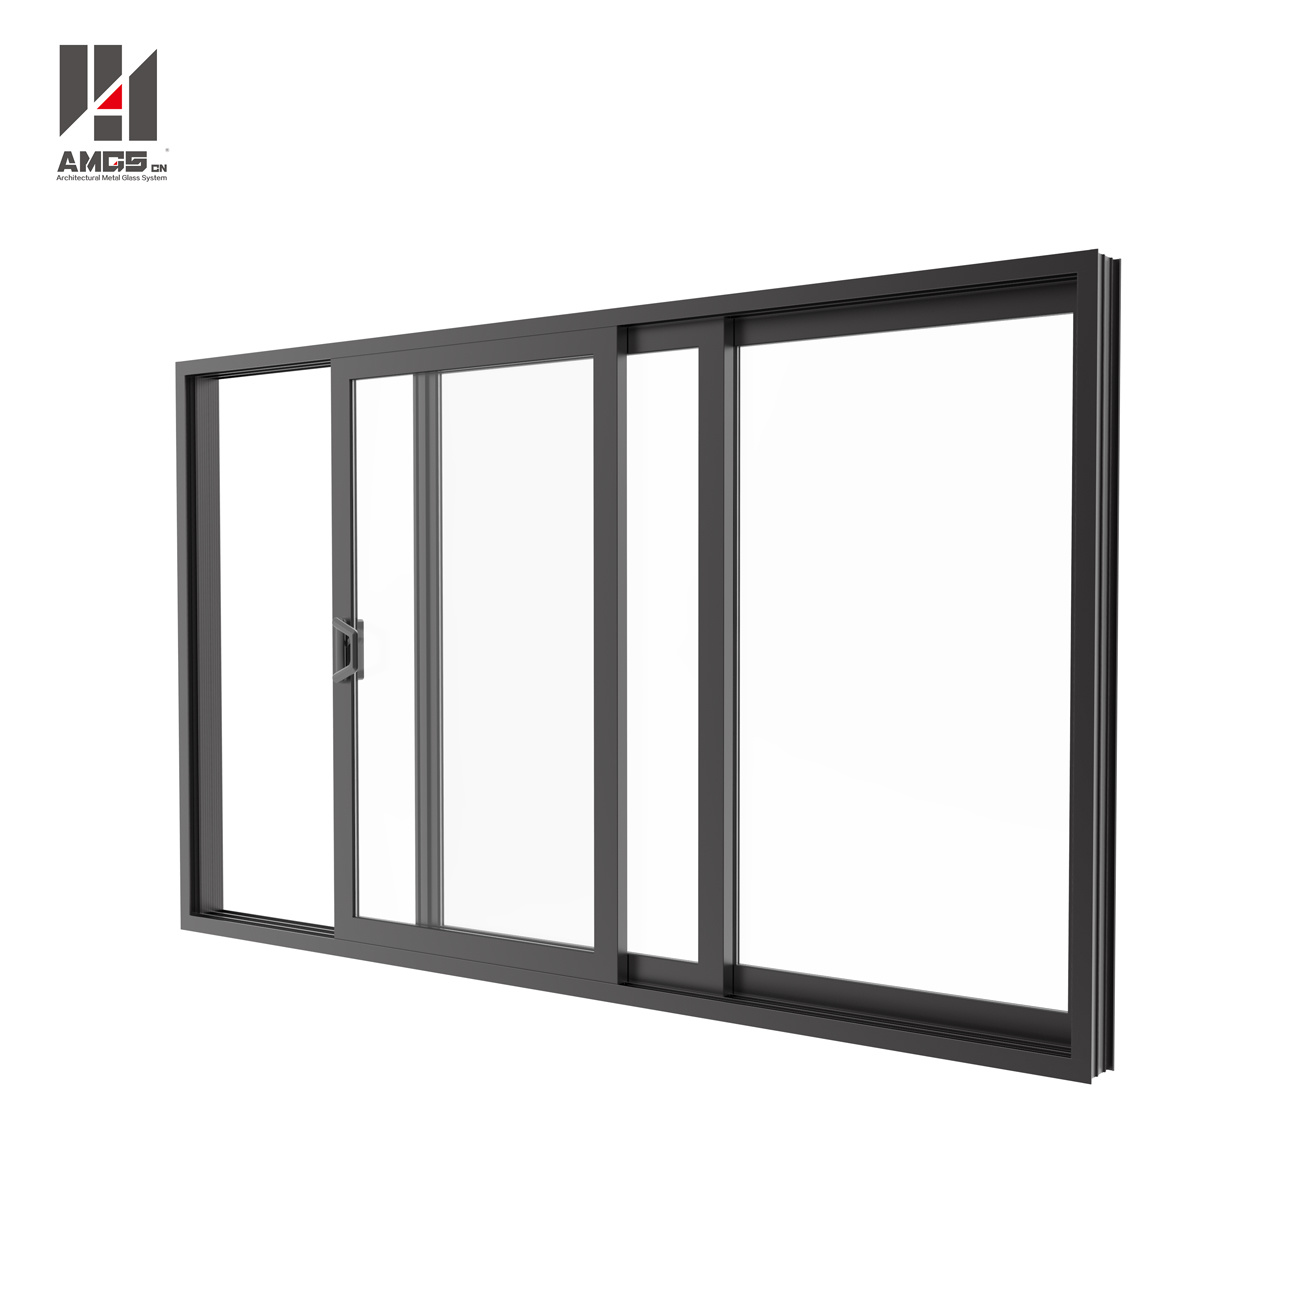 Modern Latest Design Doors Windows Price of Aluminum Sliding Window with Mosquito Net pictures & photos